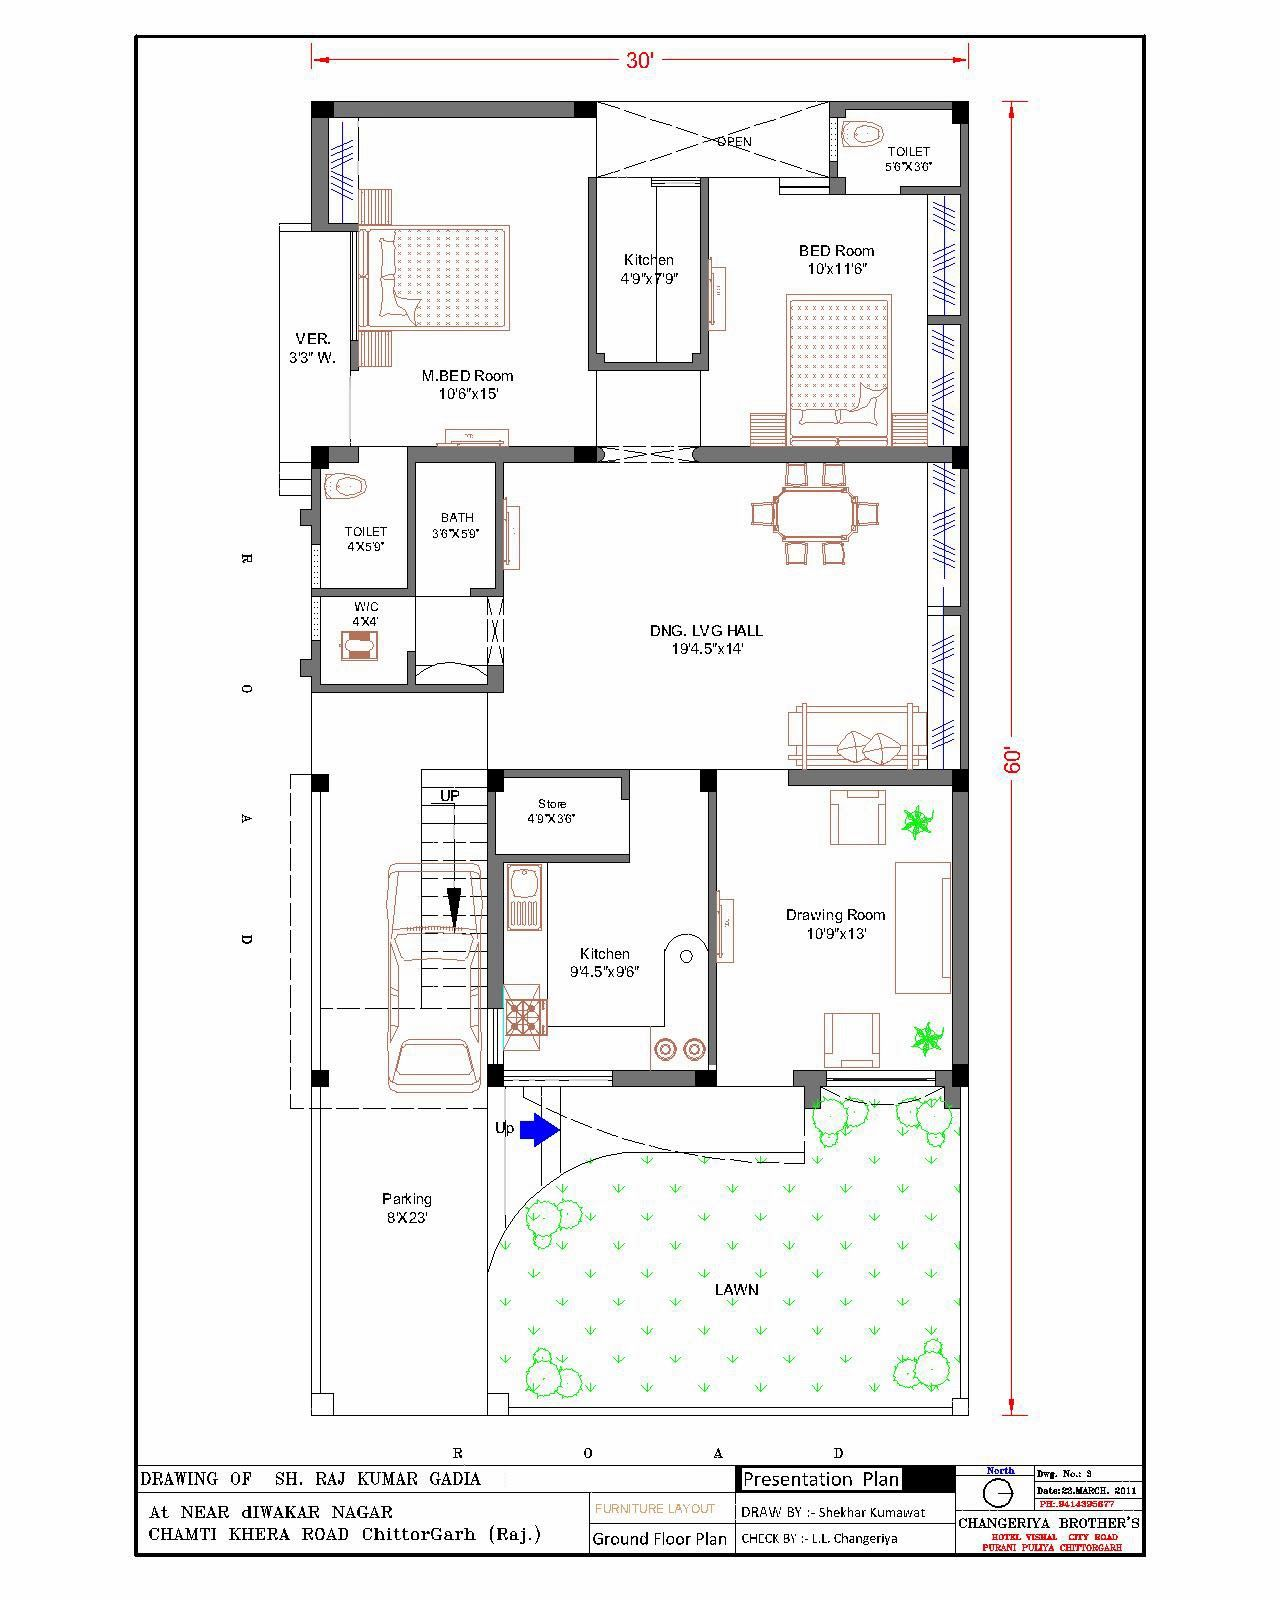 House Map Image Find The Best Images Of Modern House Decor And Architecture At Https Zionstar N Free House Plan Software Drawing House Plans Free House Plans